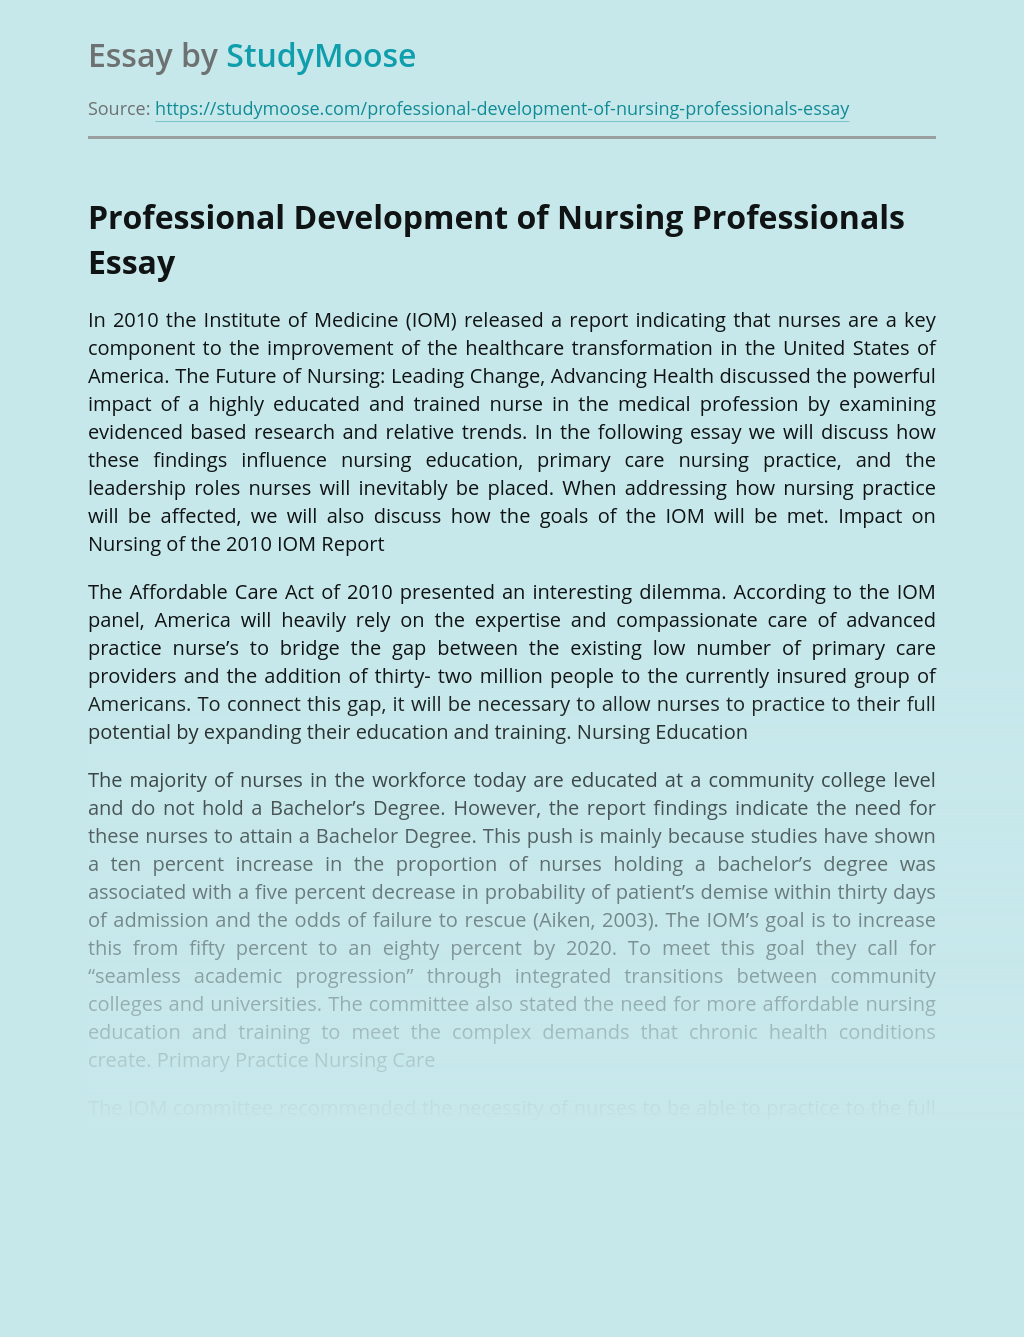 Professional Development of Nursing Professionals